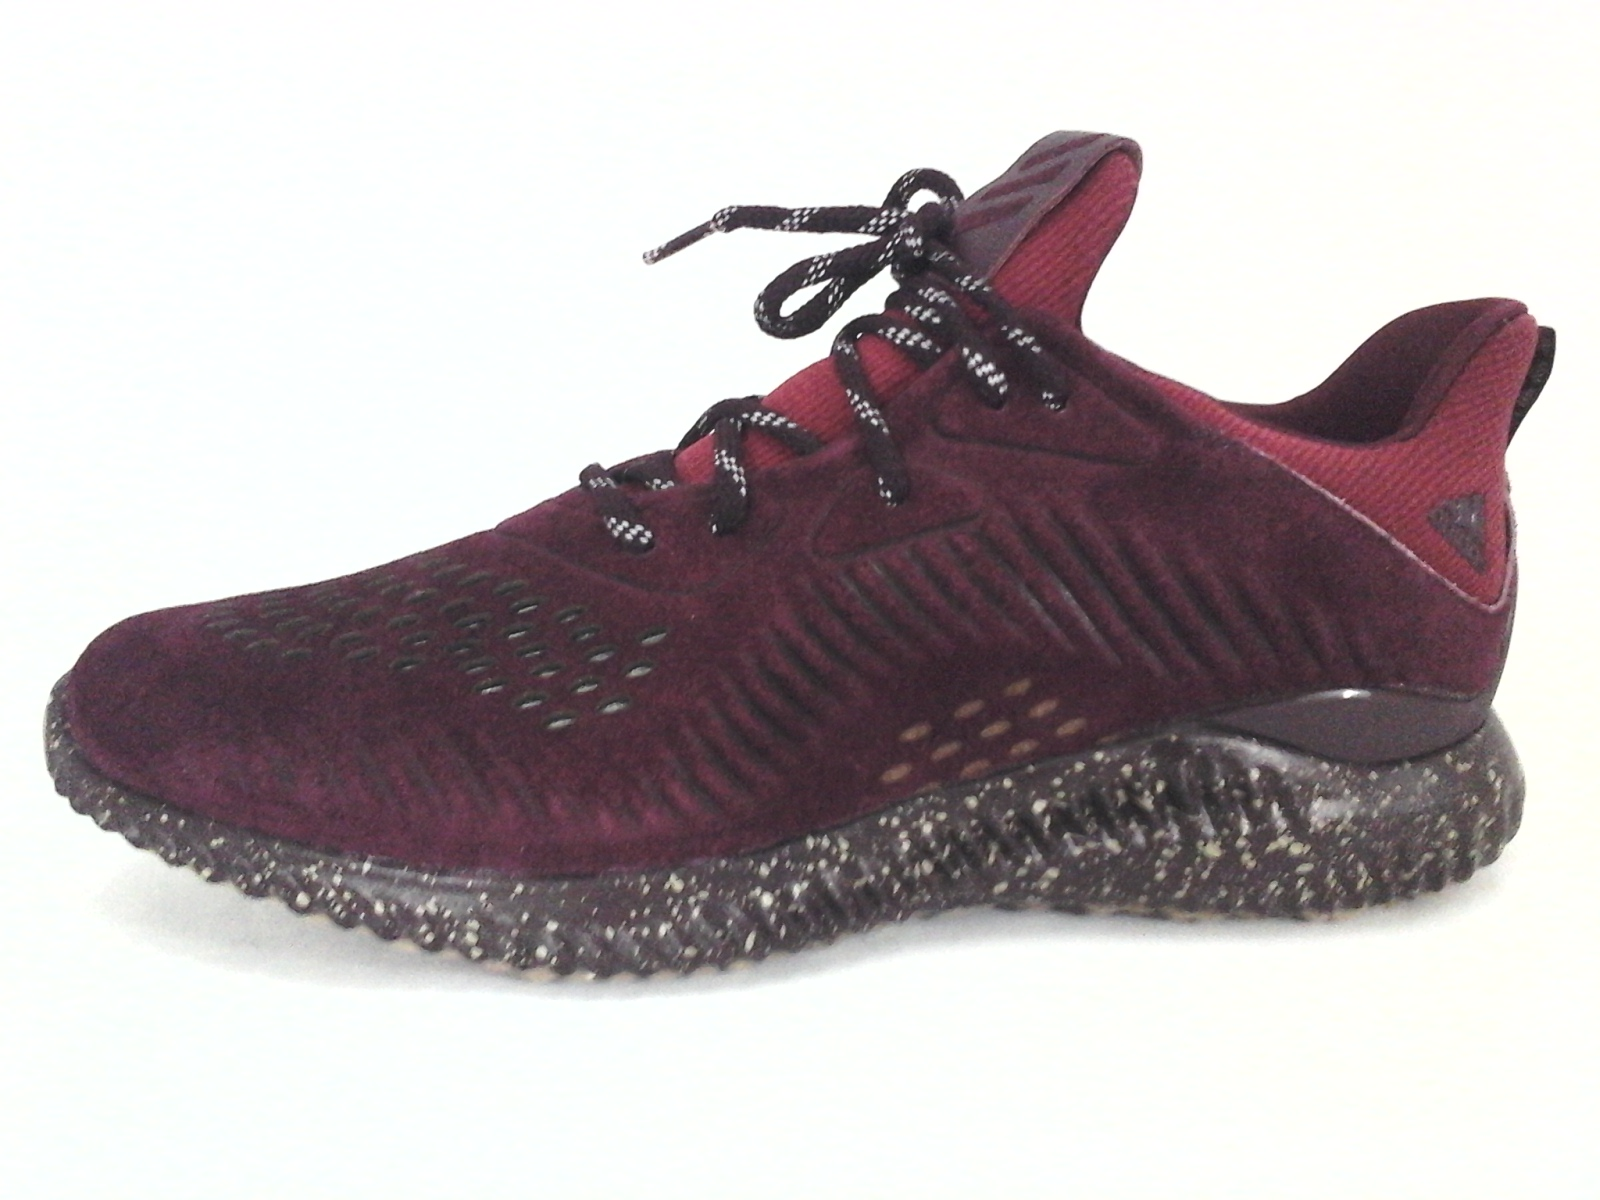 ADIDAS Alphabounce Shoes Sneakers Maroon Red Suede CQ1189 Mens US 13 EU 48  New 4350de084